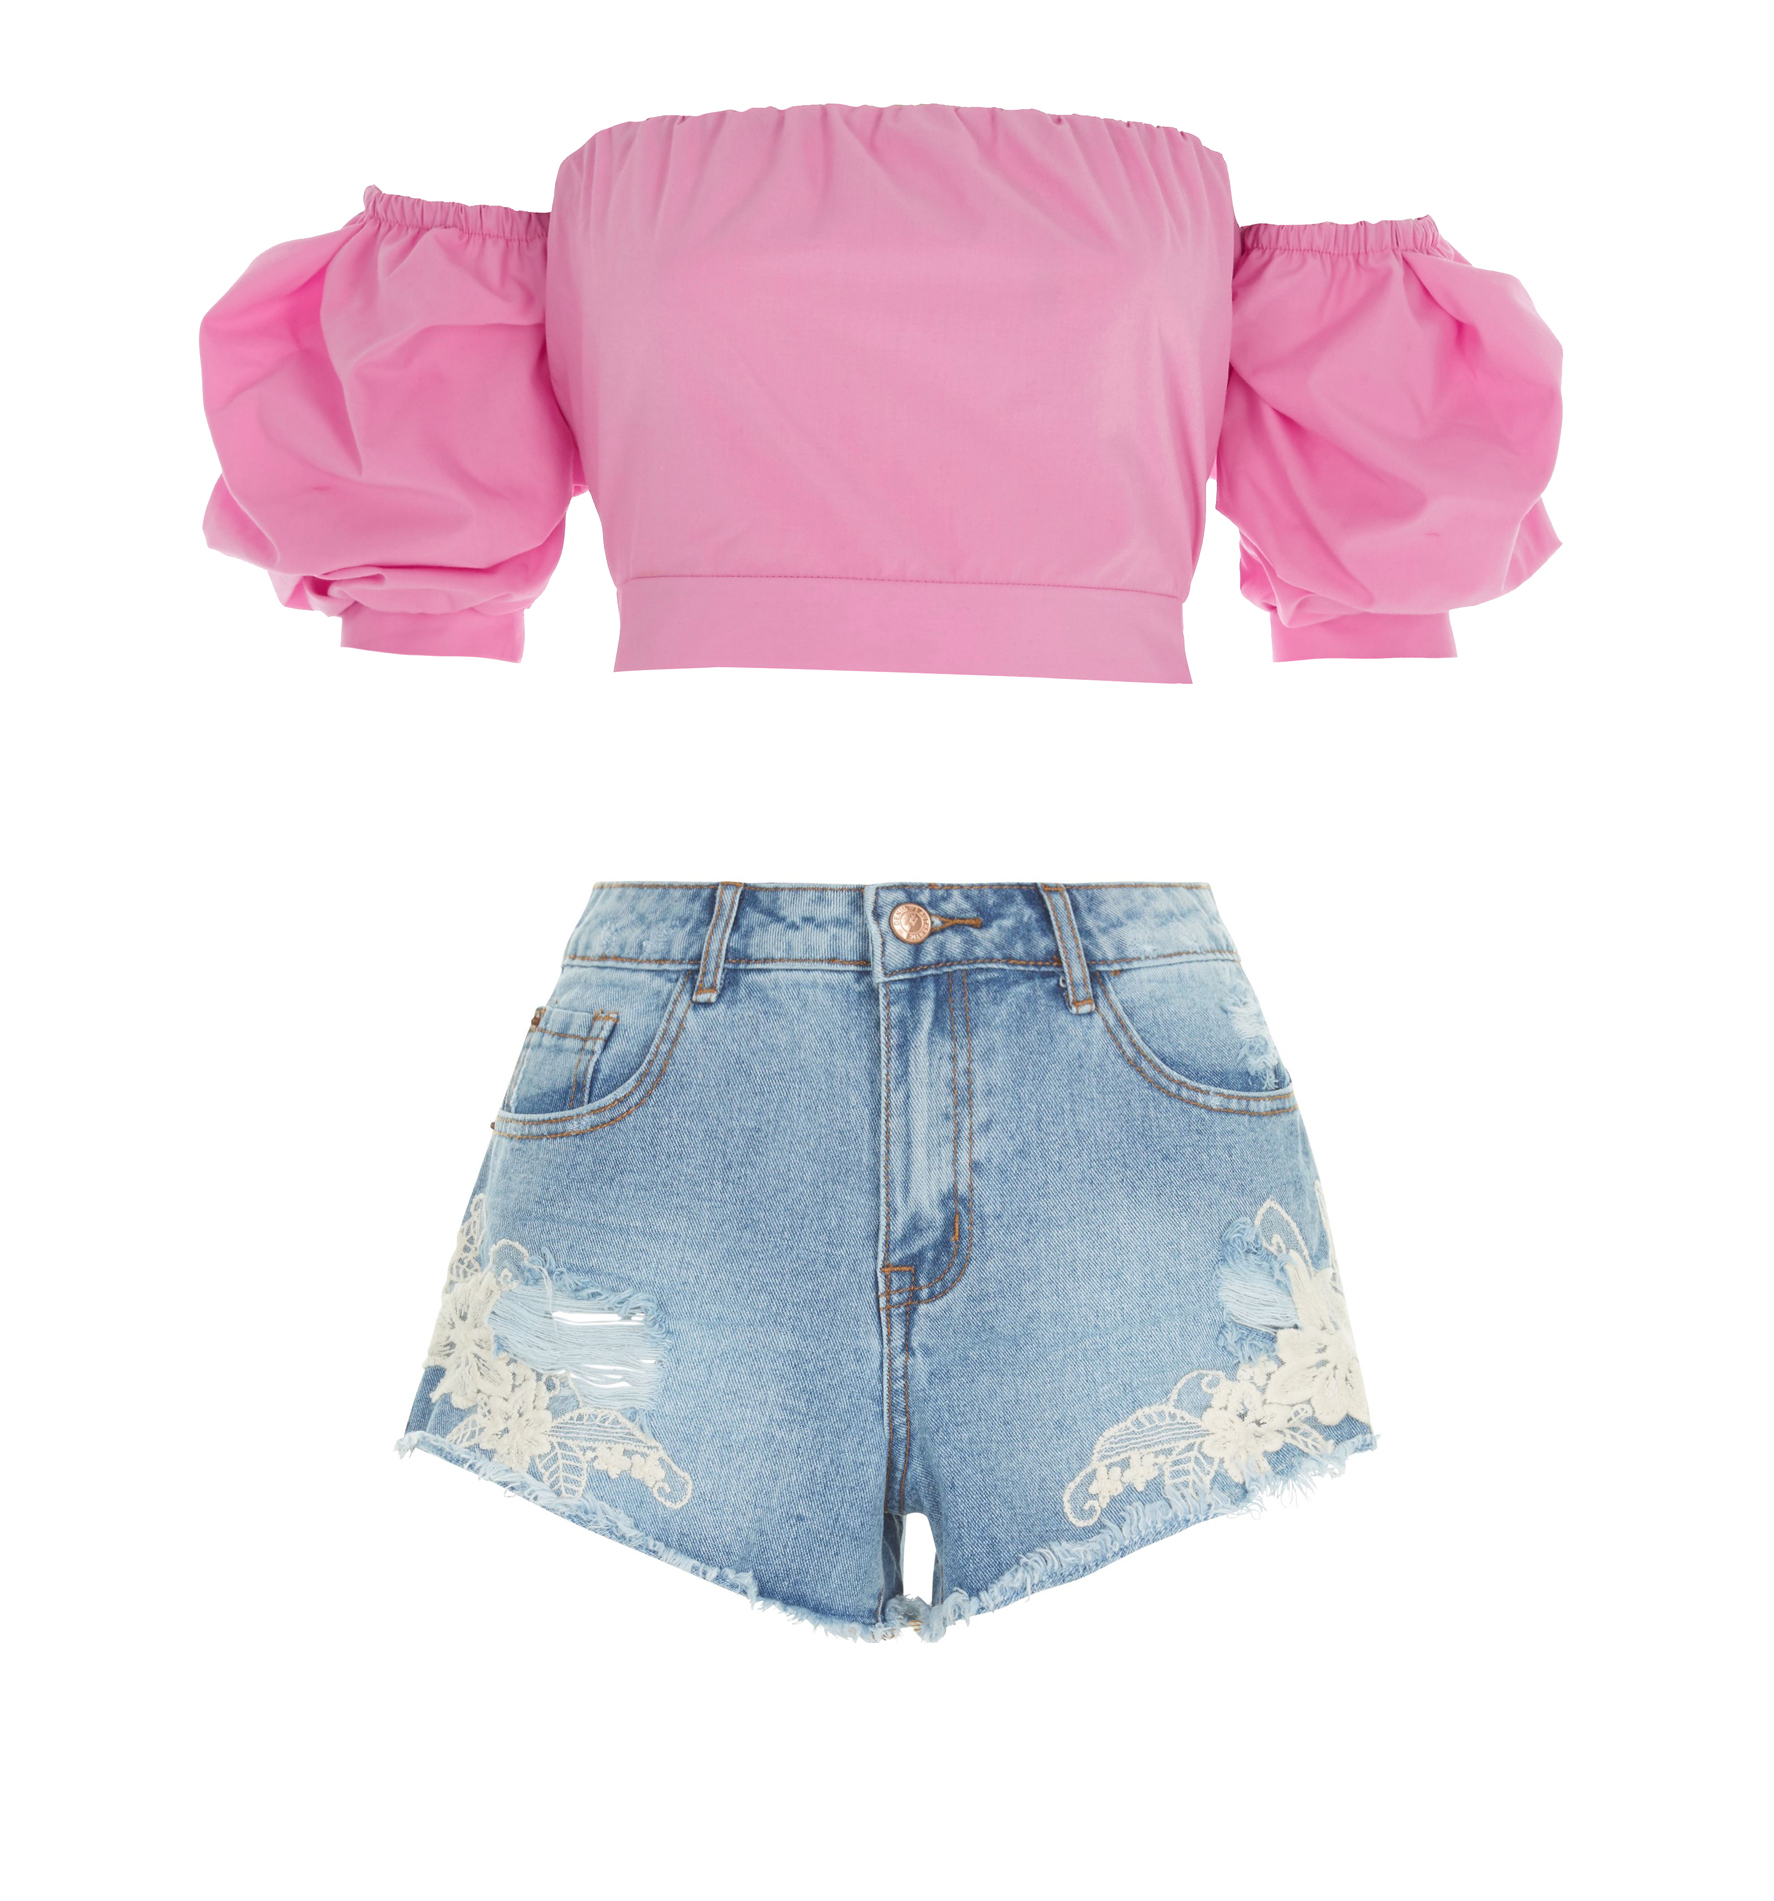 River Island pink top and new look denim shorts (River Island/New Look/PA)